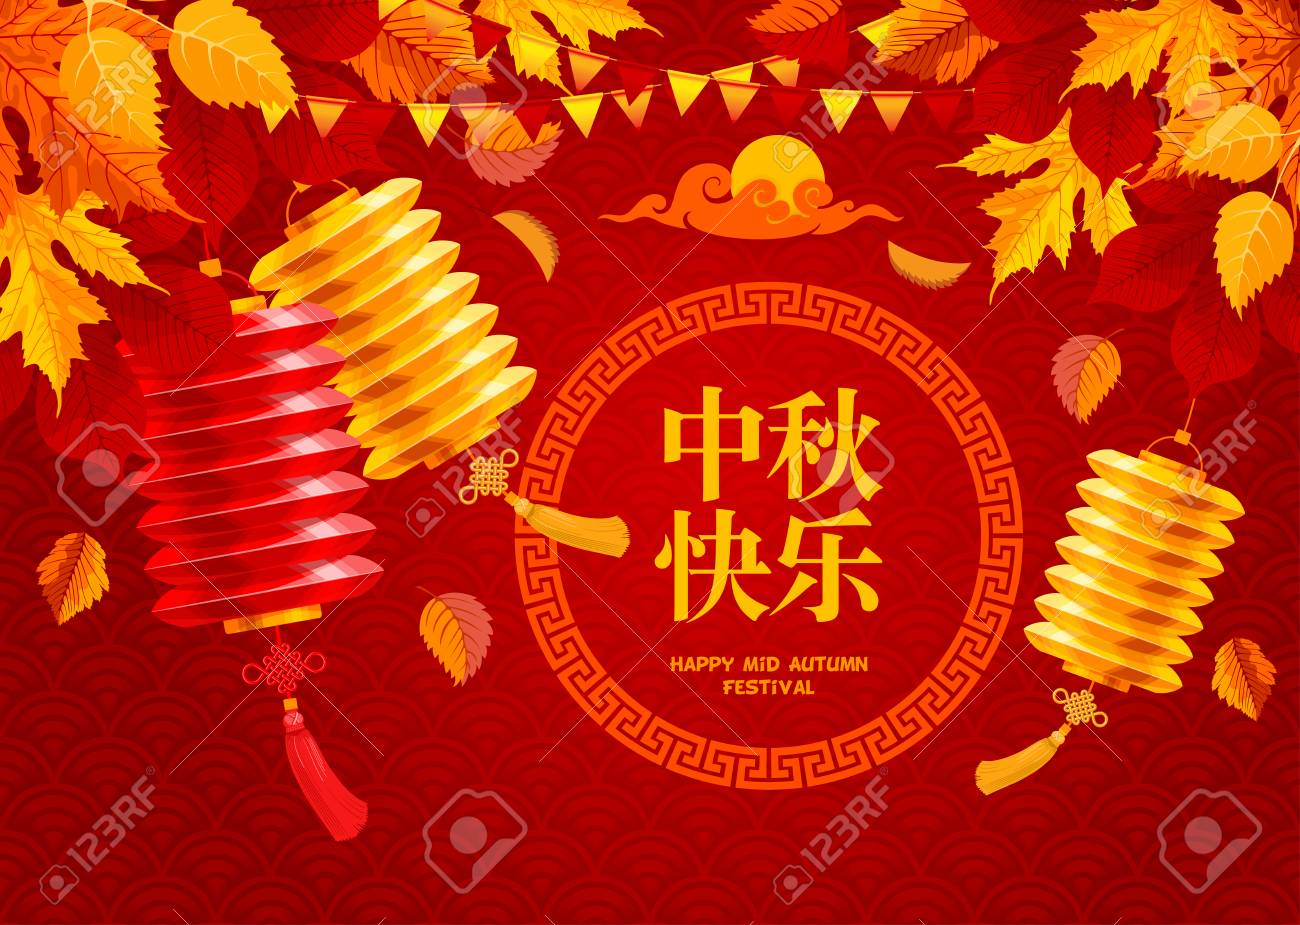 Mid Autumn festival design with chinese paper lanterns and autumn